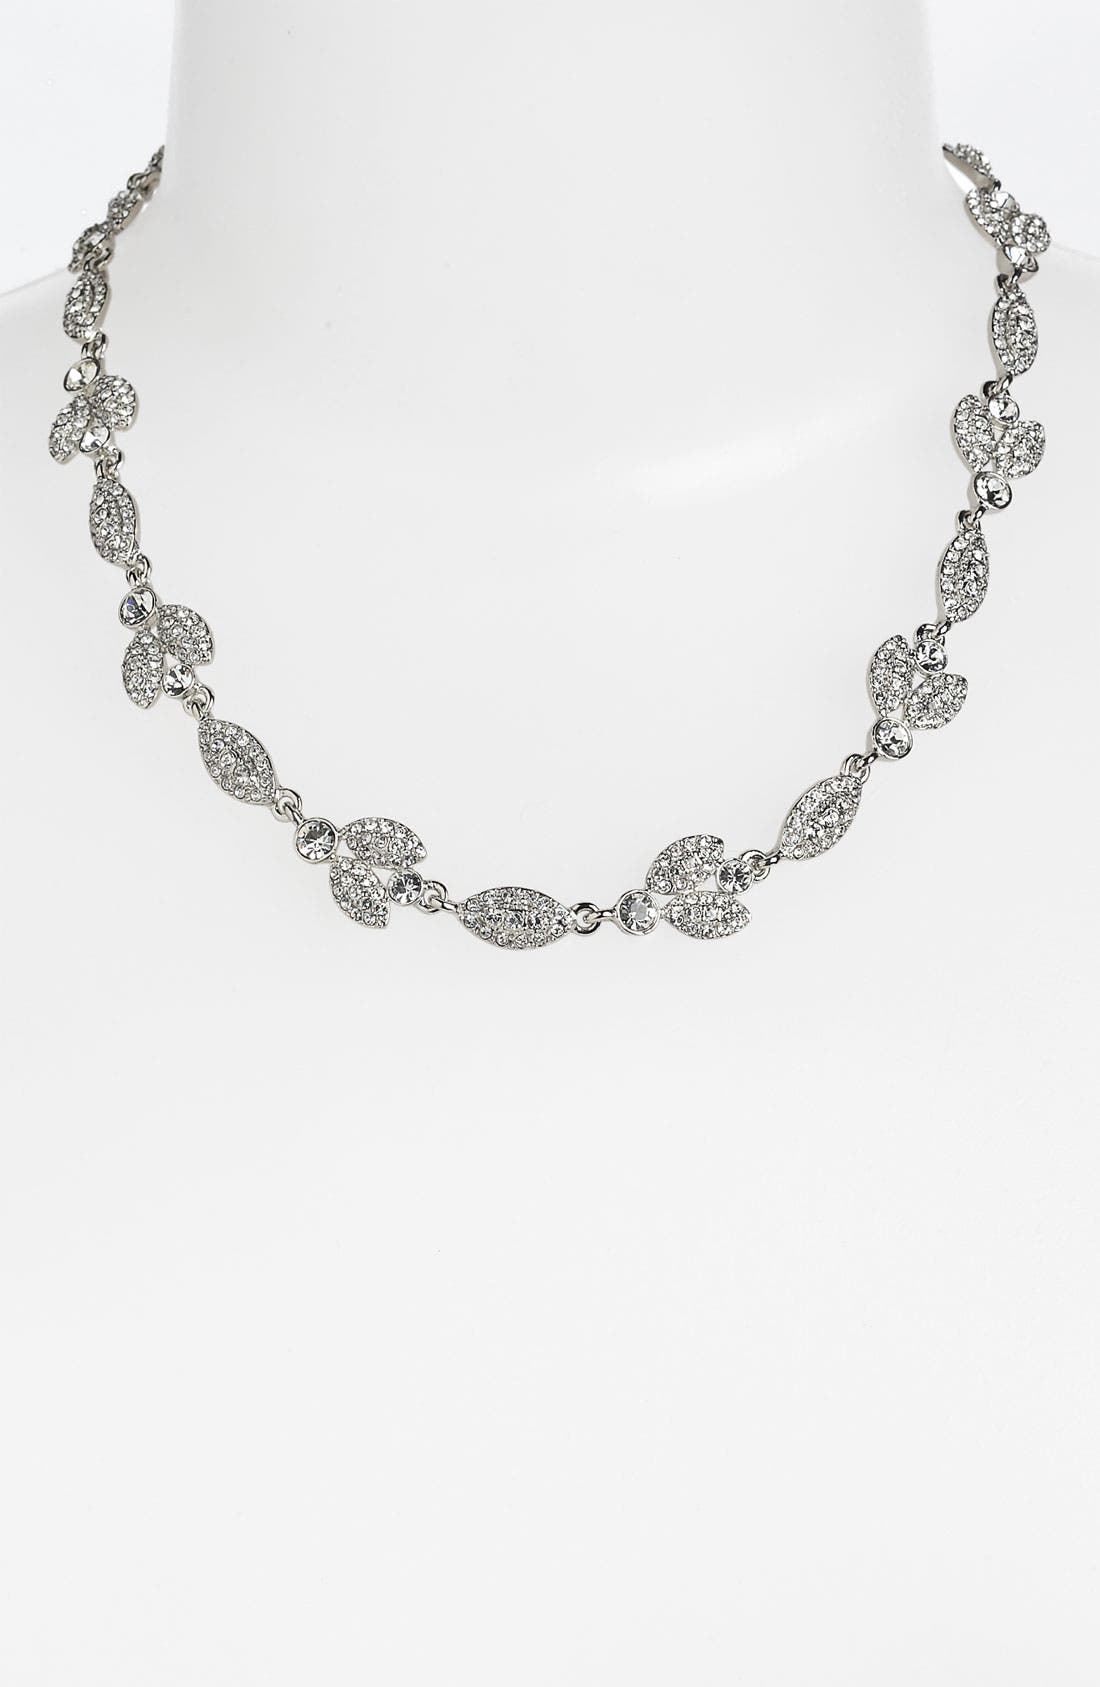 Main Image - Givenchy Crystal Collar Necklace